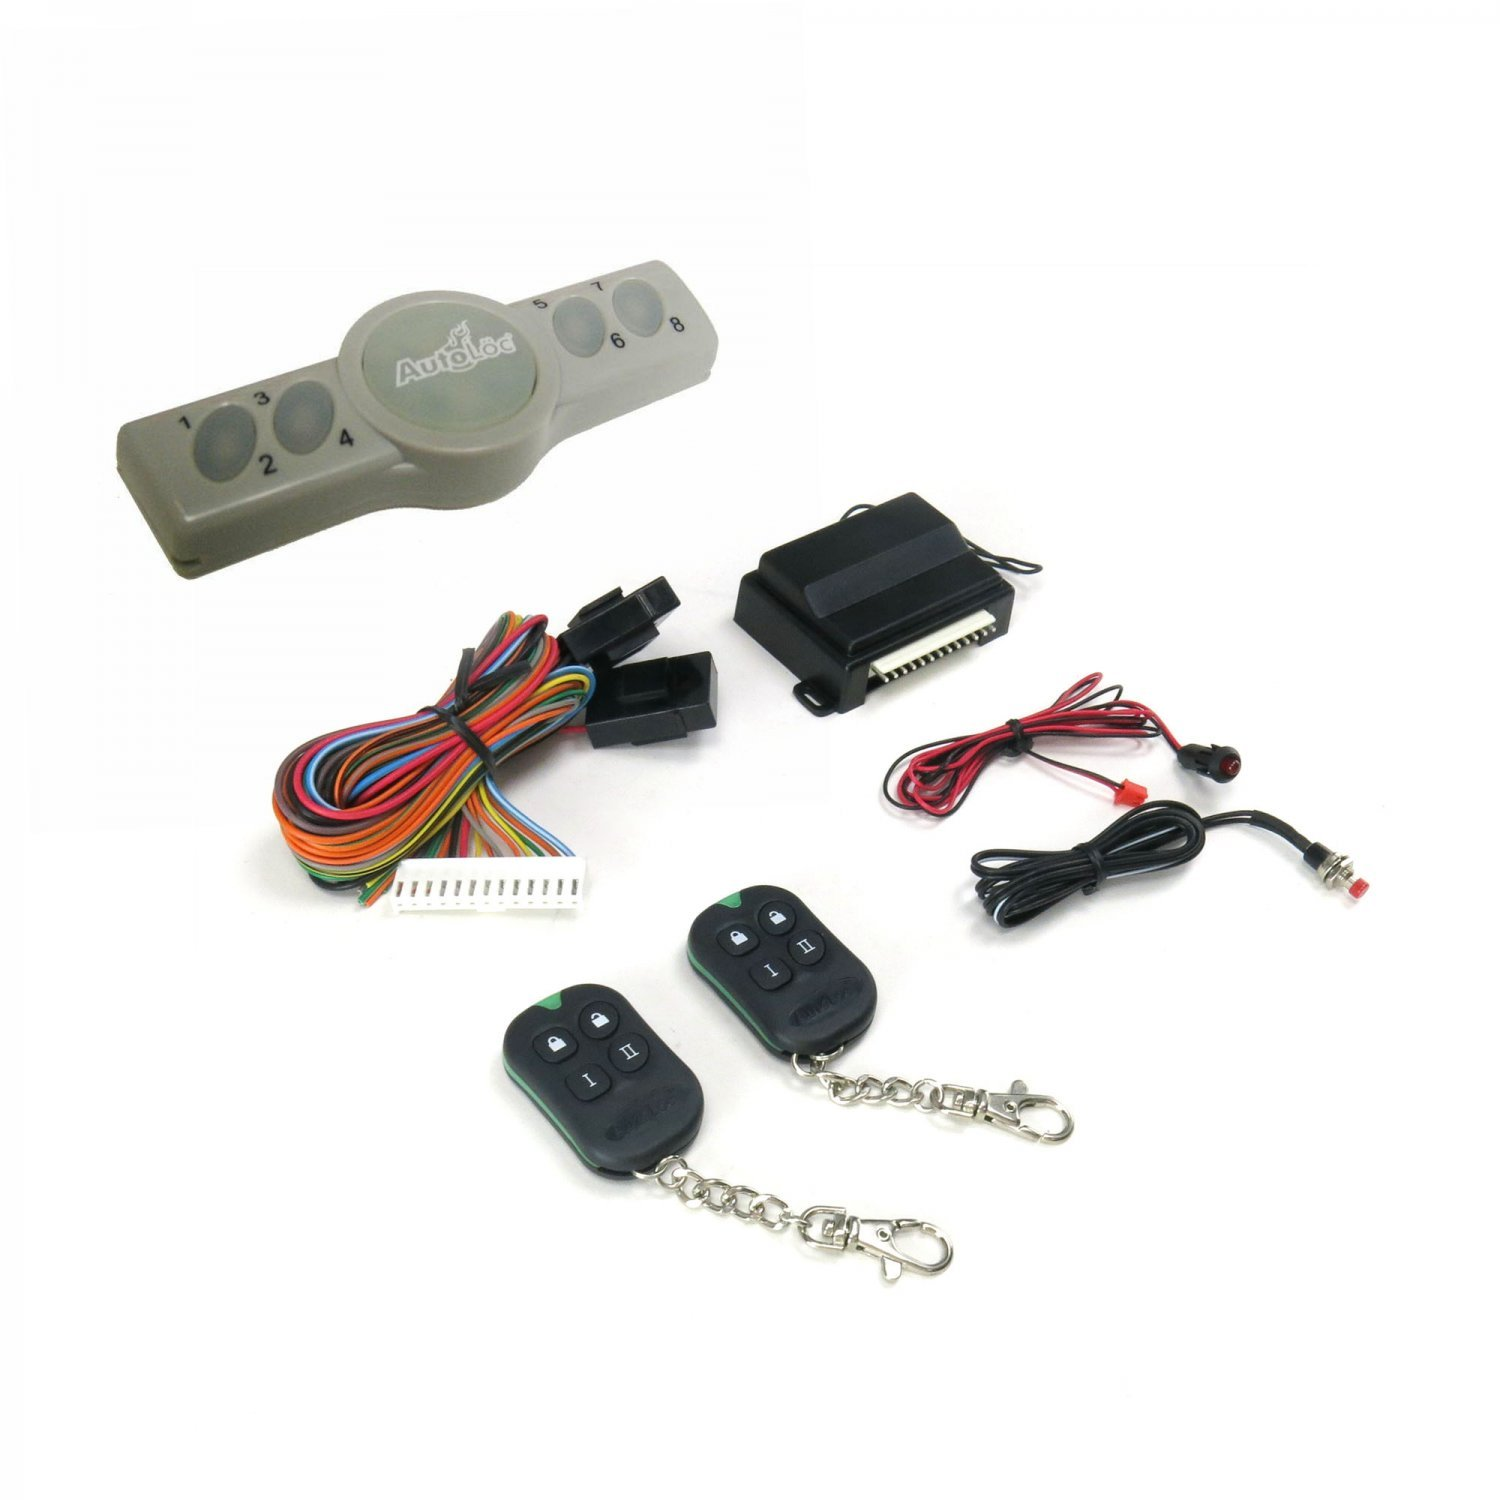 AutoLoc Power Accessories 9769 Axess Wireless Touch Pad Entry System with Remote Entry System